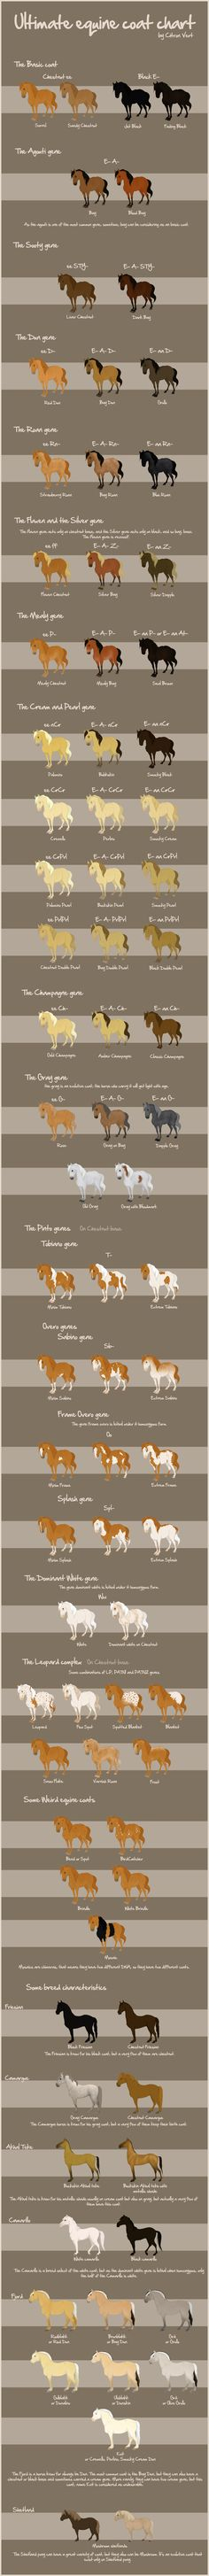 It's called the Ultimate Equine Genetics Chart... it has some errors but is pretty good.